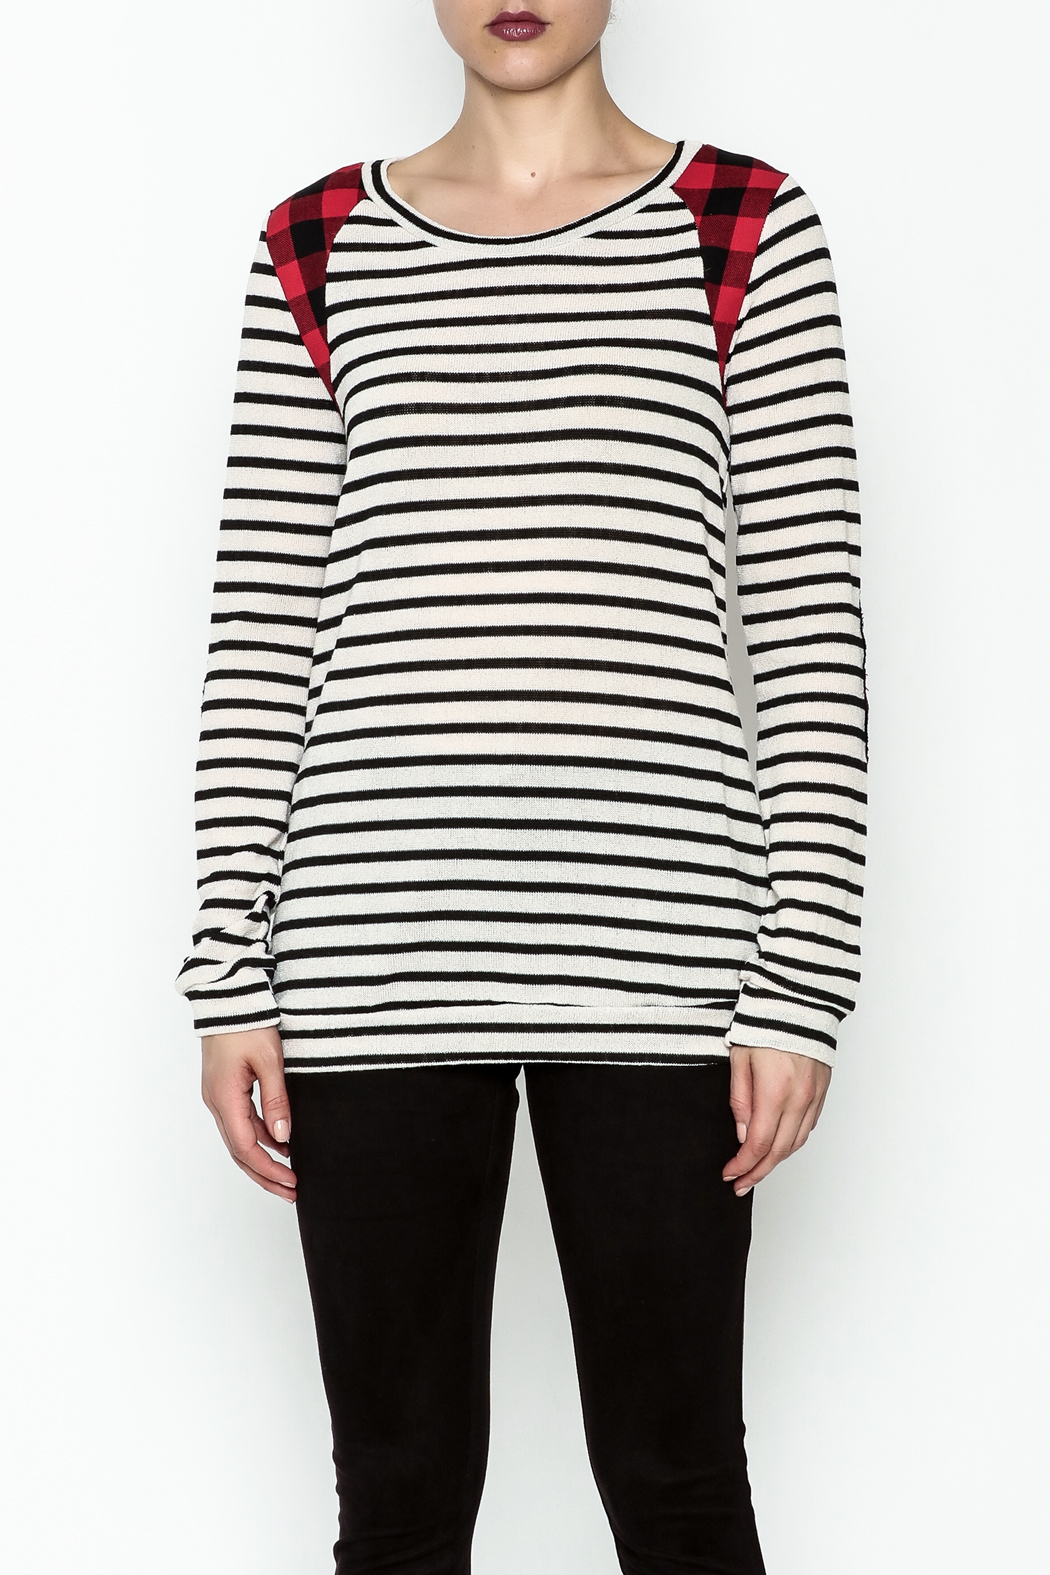 12pm by Mon Ami Kerri Stripe Top - Front Full Image